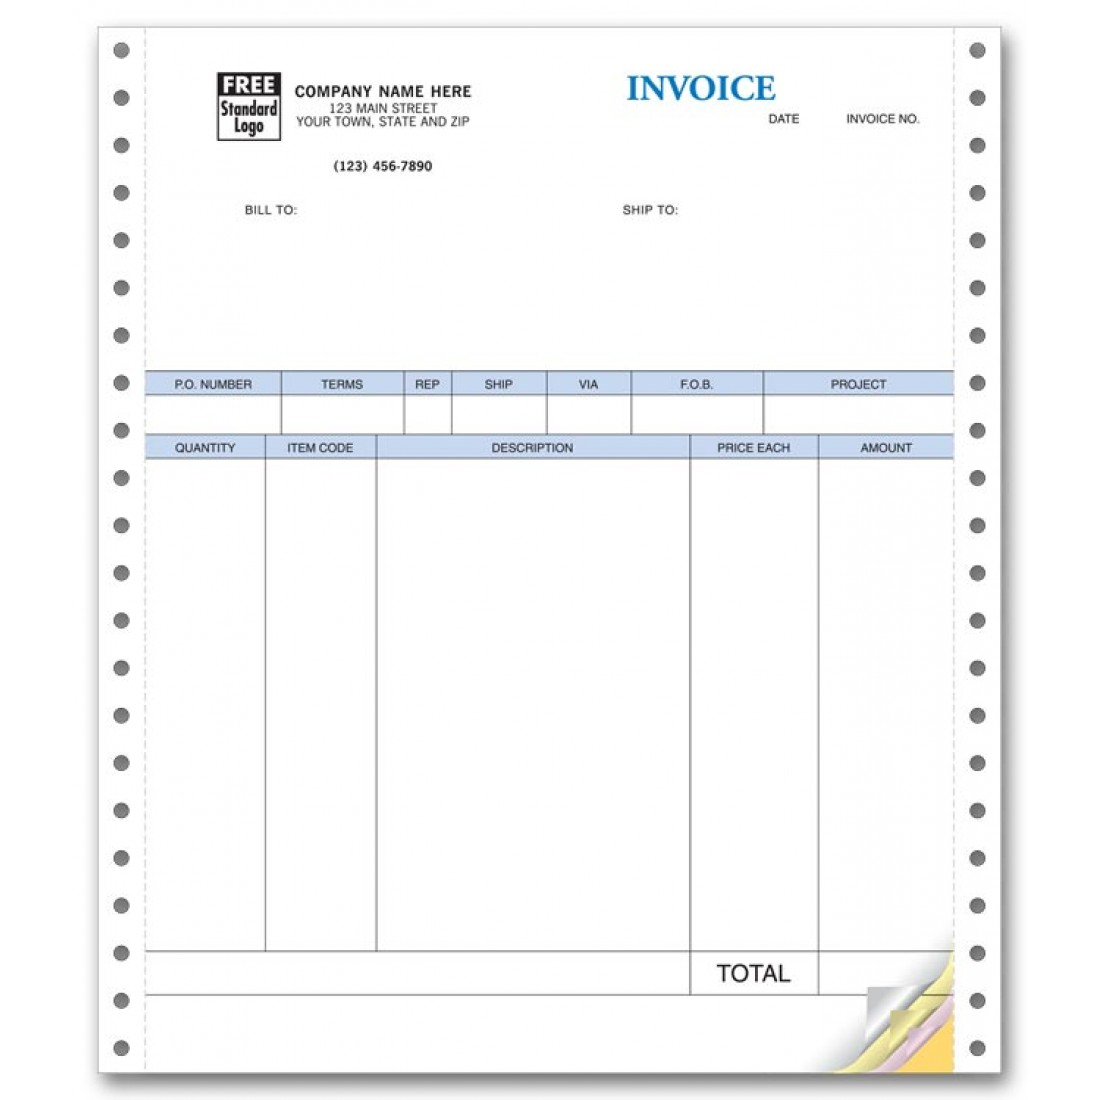 Continuous Product Invoice compatible with QuickBooks  - No Packing Slip